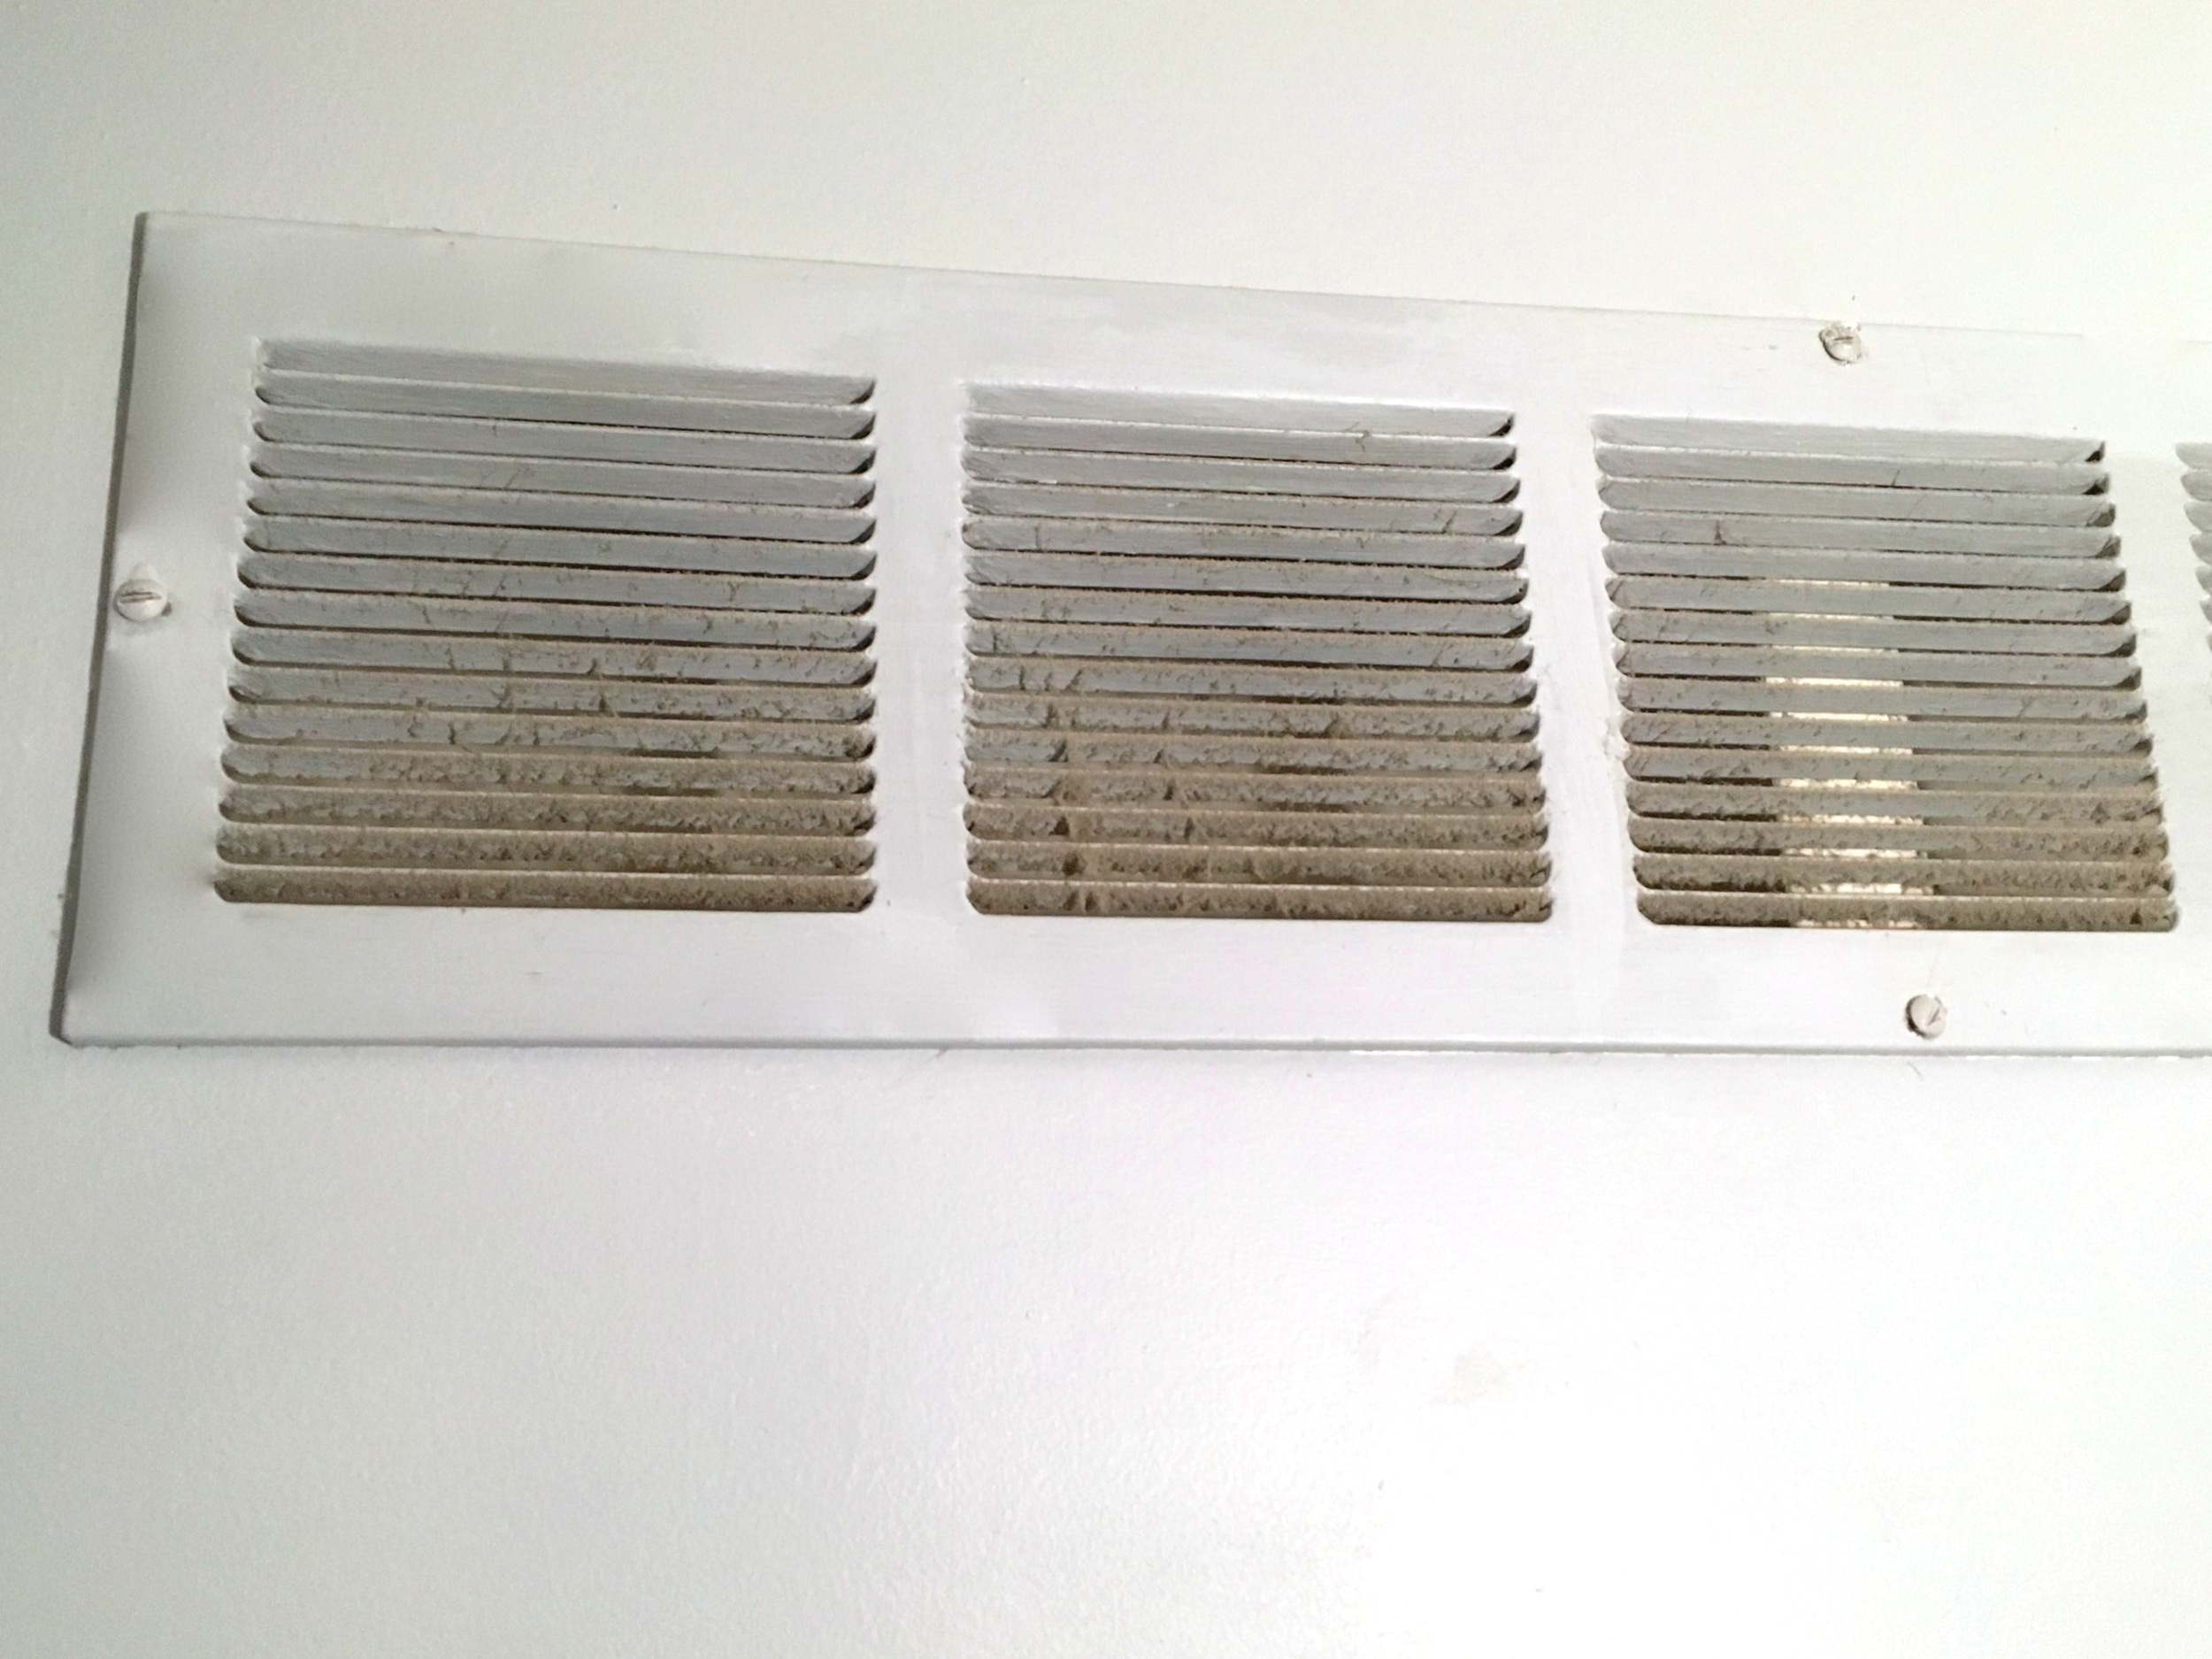 Duct cleaning + no air purifier = a waste.